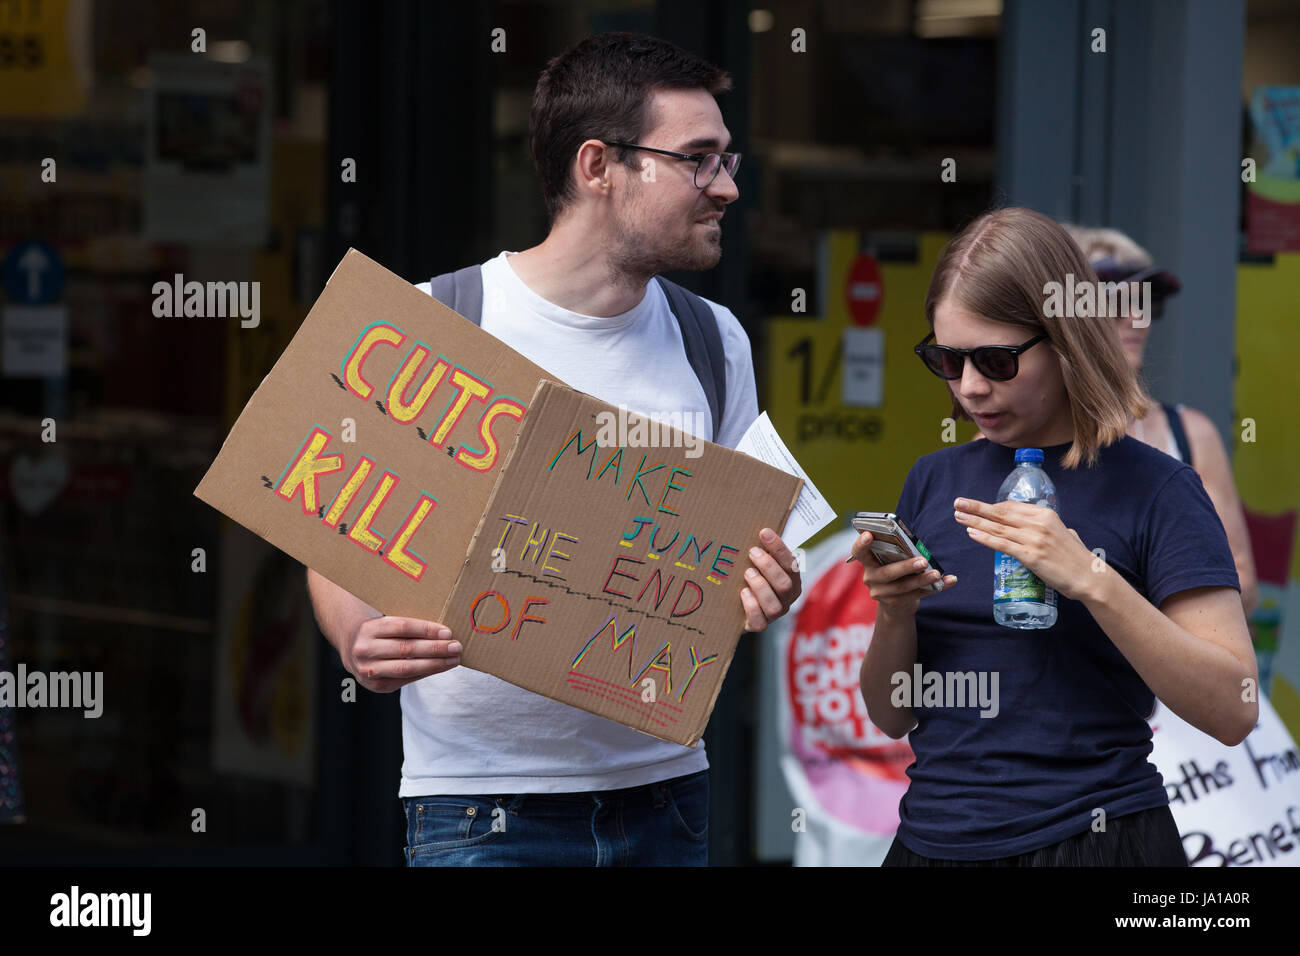 Maidenhead, UK. 3rd June, 2017. Activists from DPAC (Disabled People Against Cuts) protest against Government cuts - Stock Image